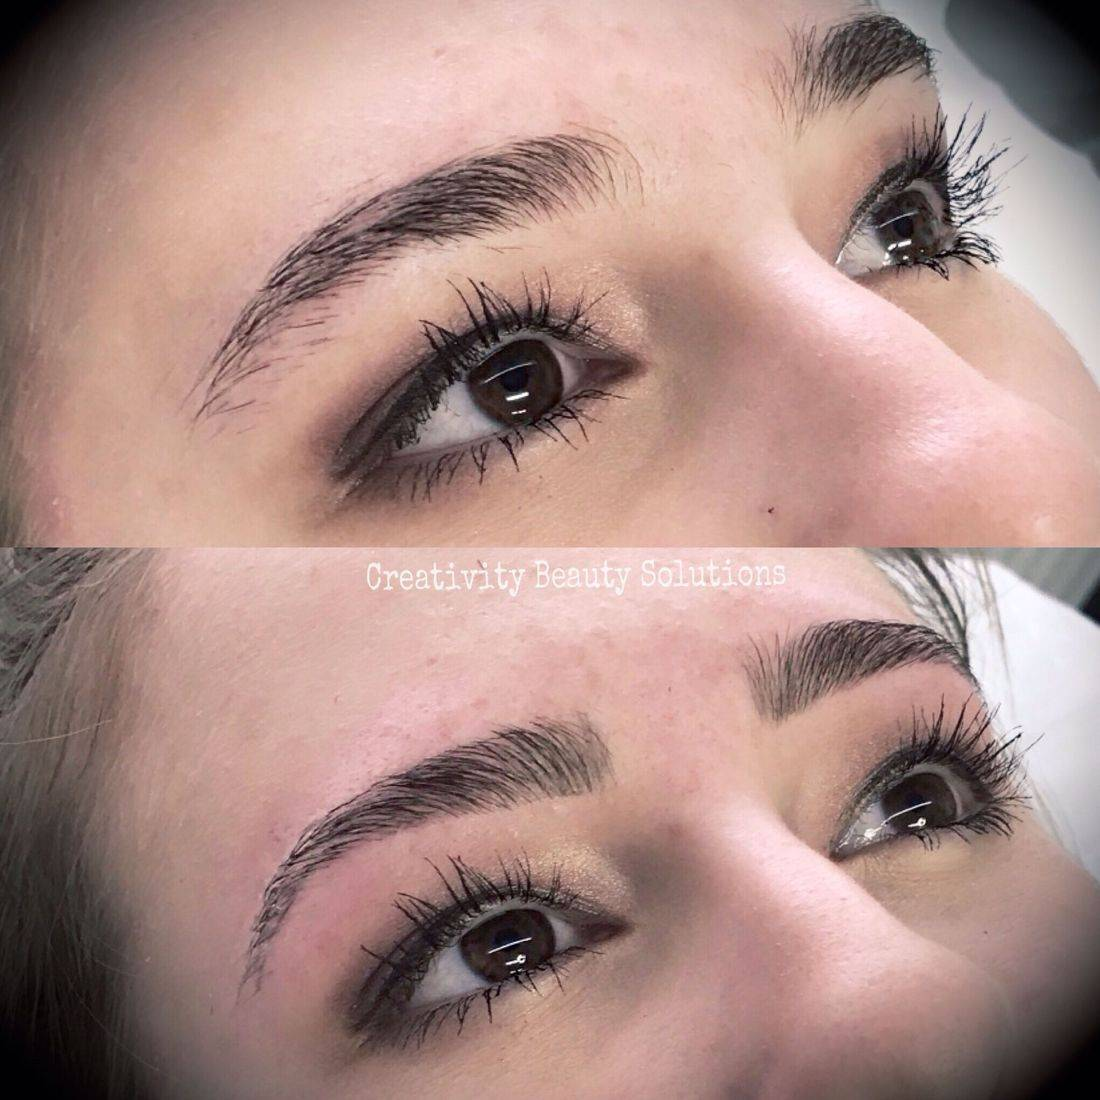 Eyebrow define, brow shape, brow tint, hd brows, eyebrow wax